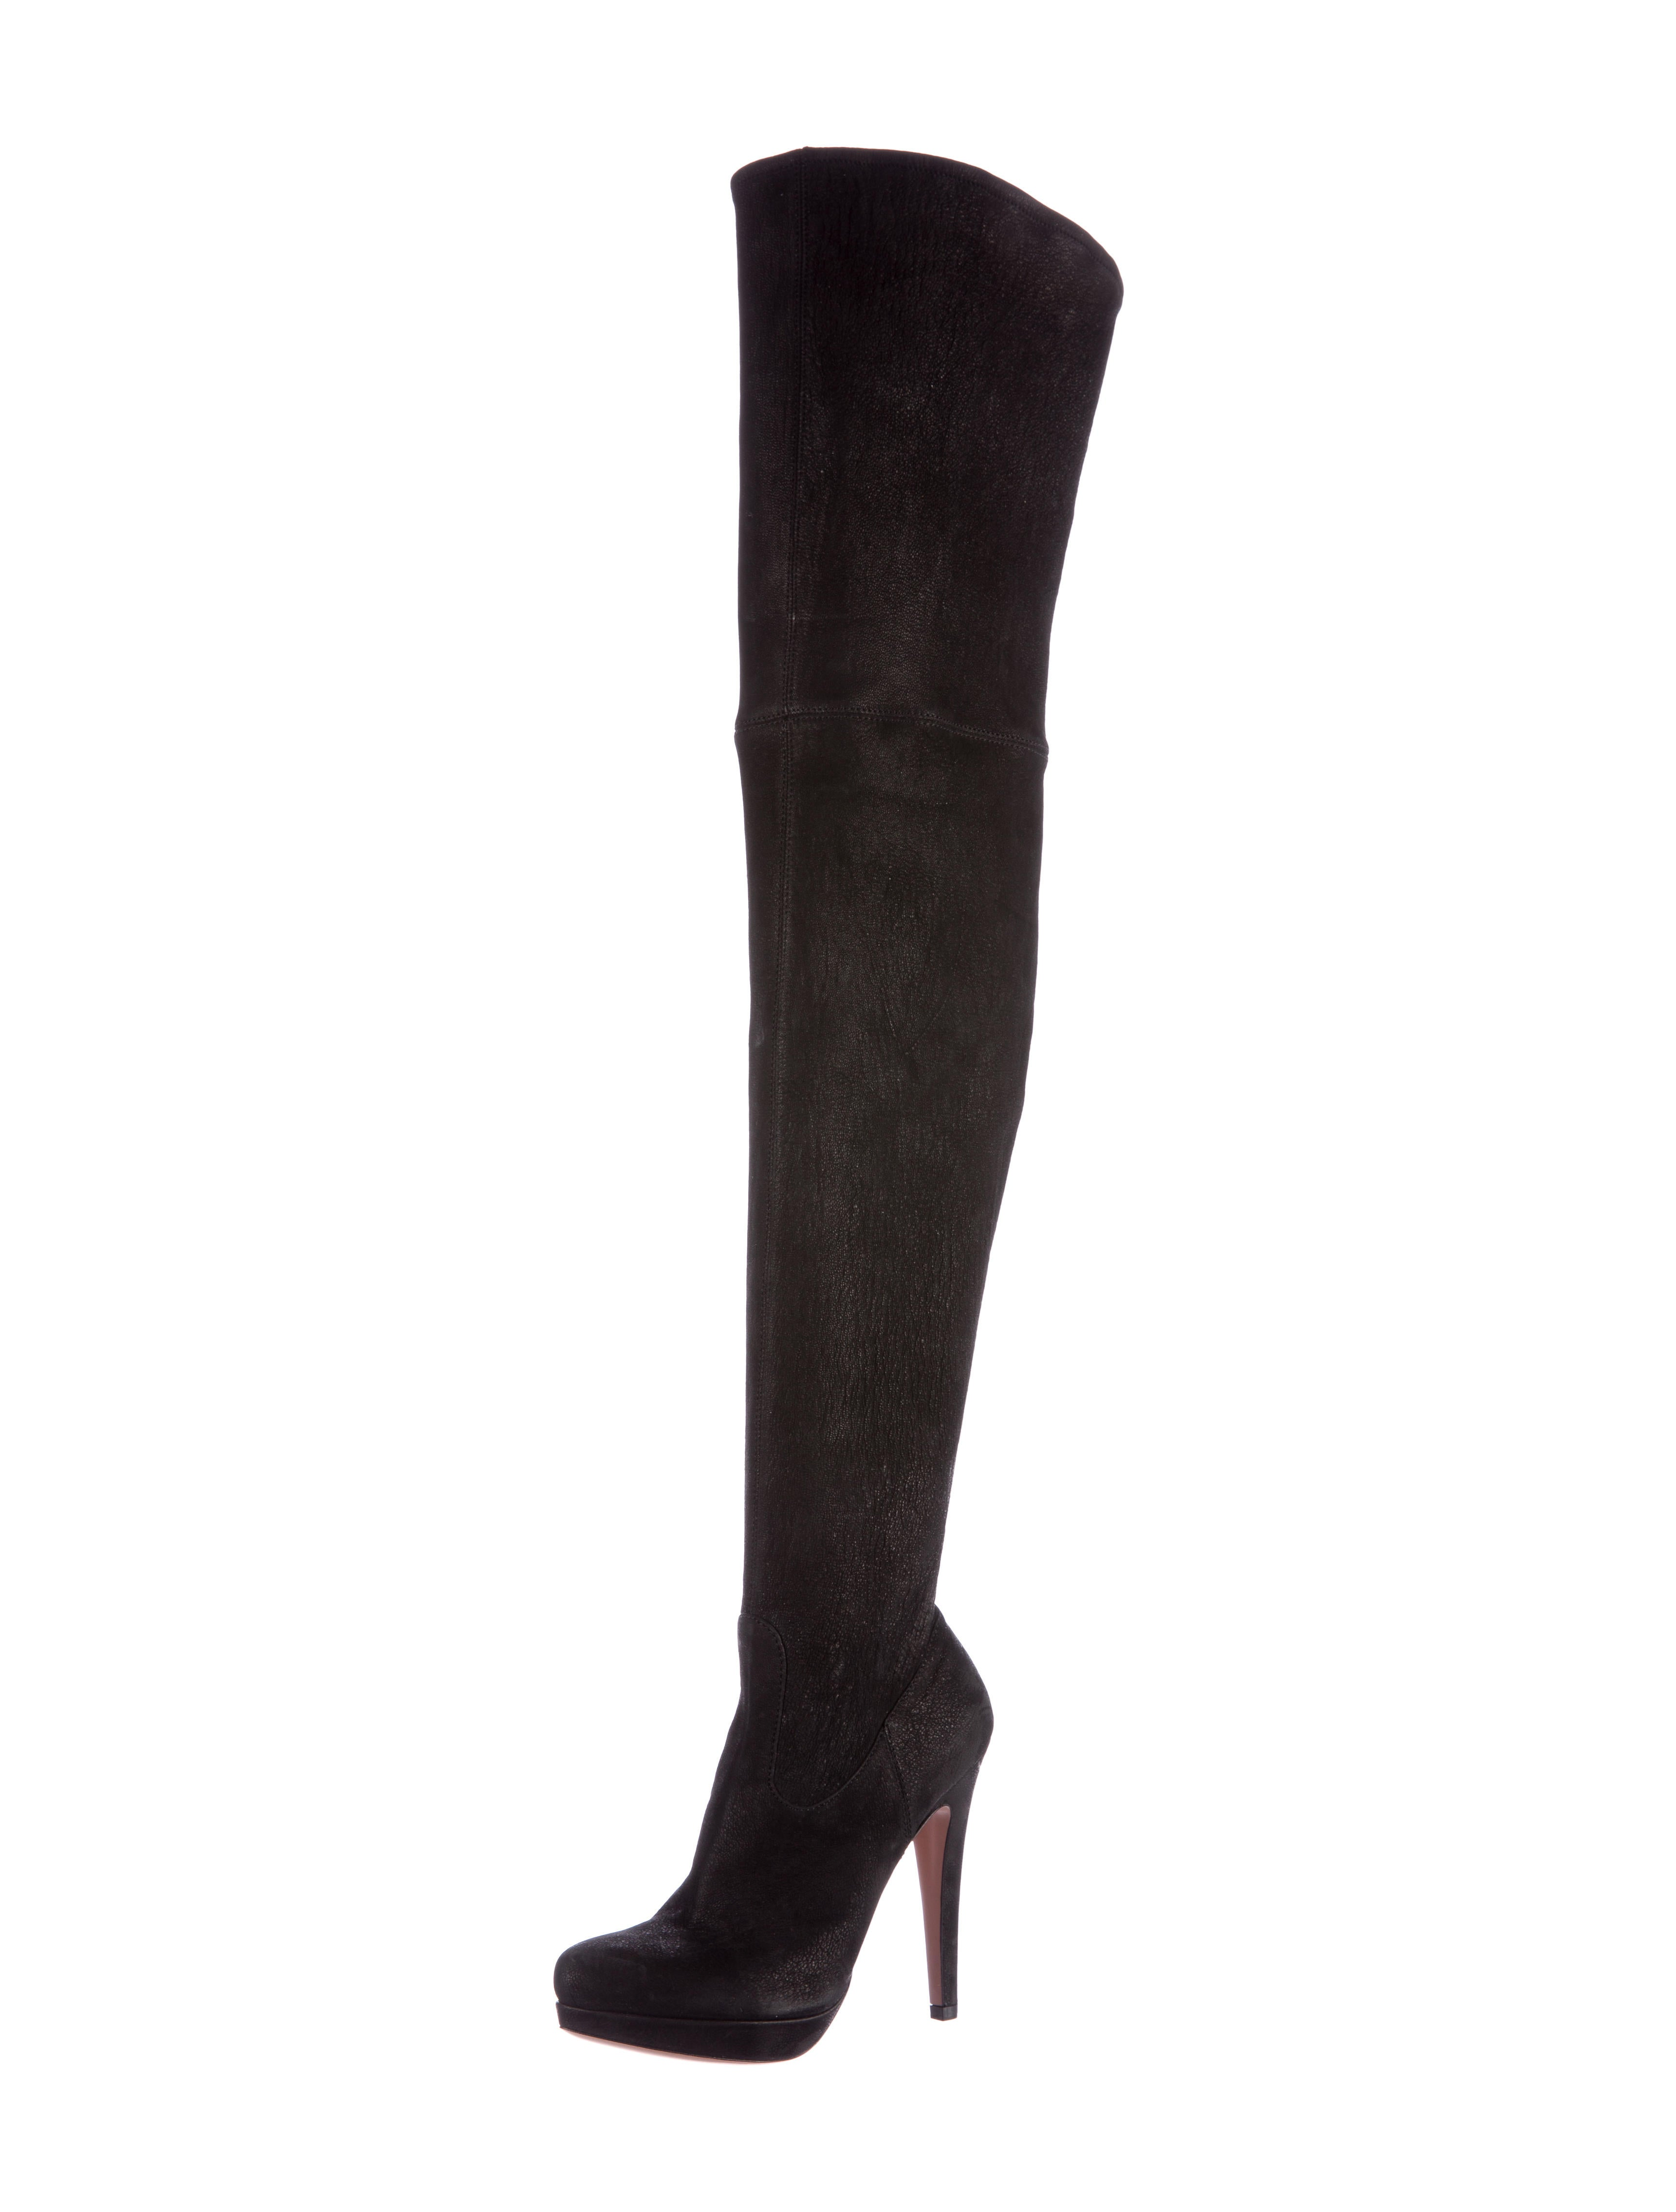 prada leather thigh high boots shoes pra117540 the